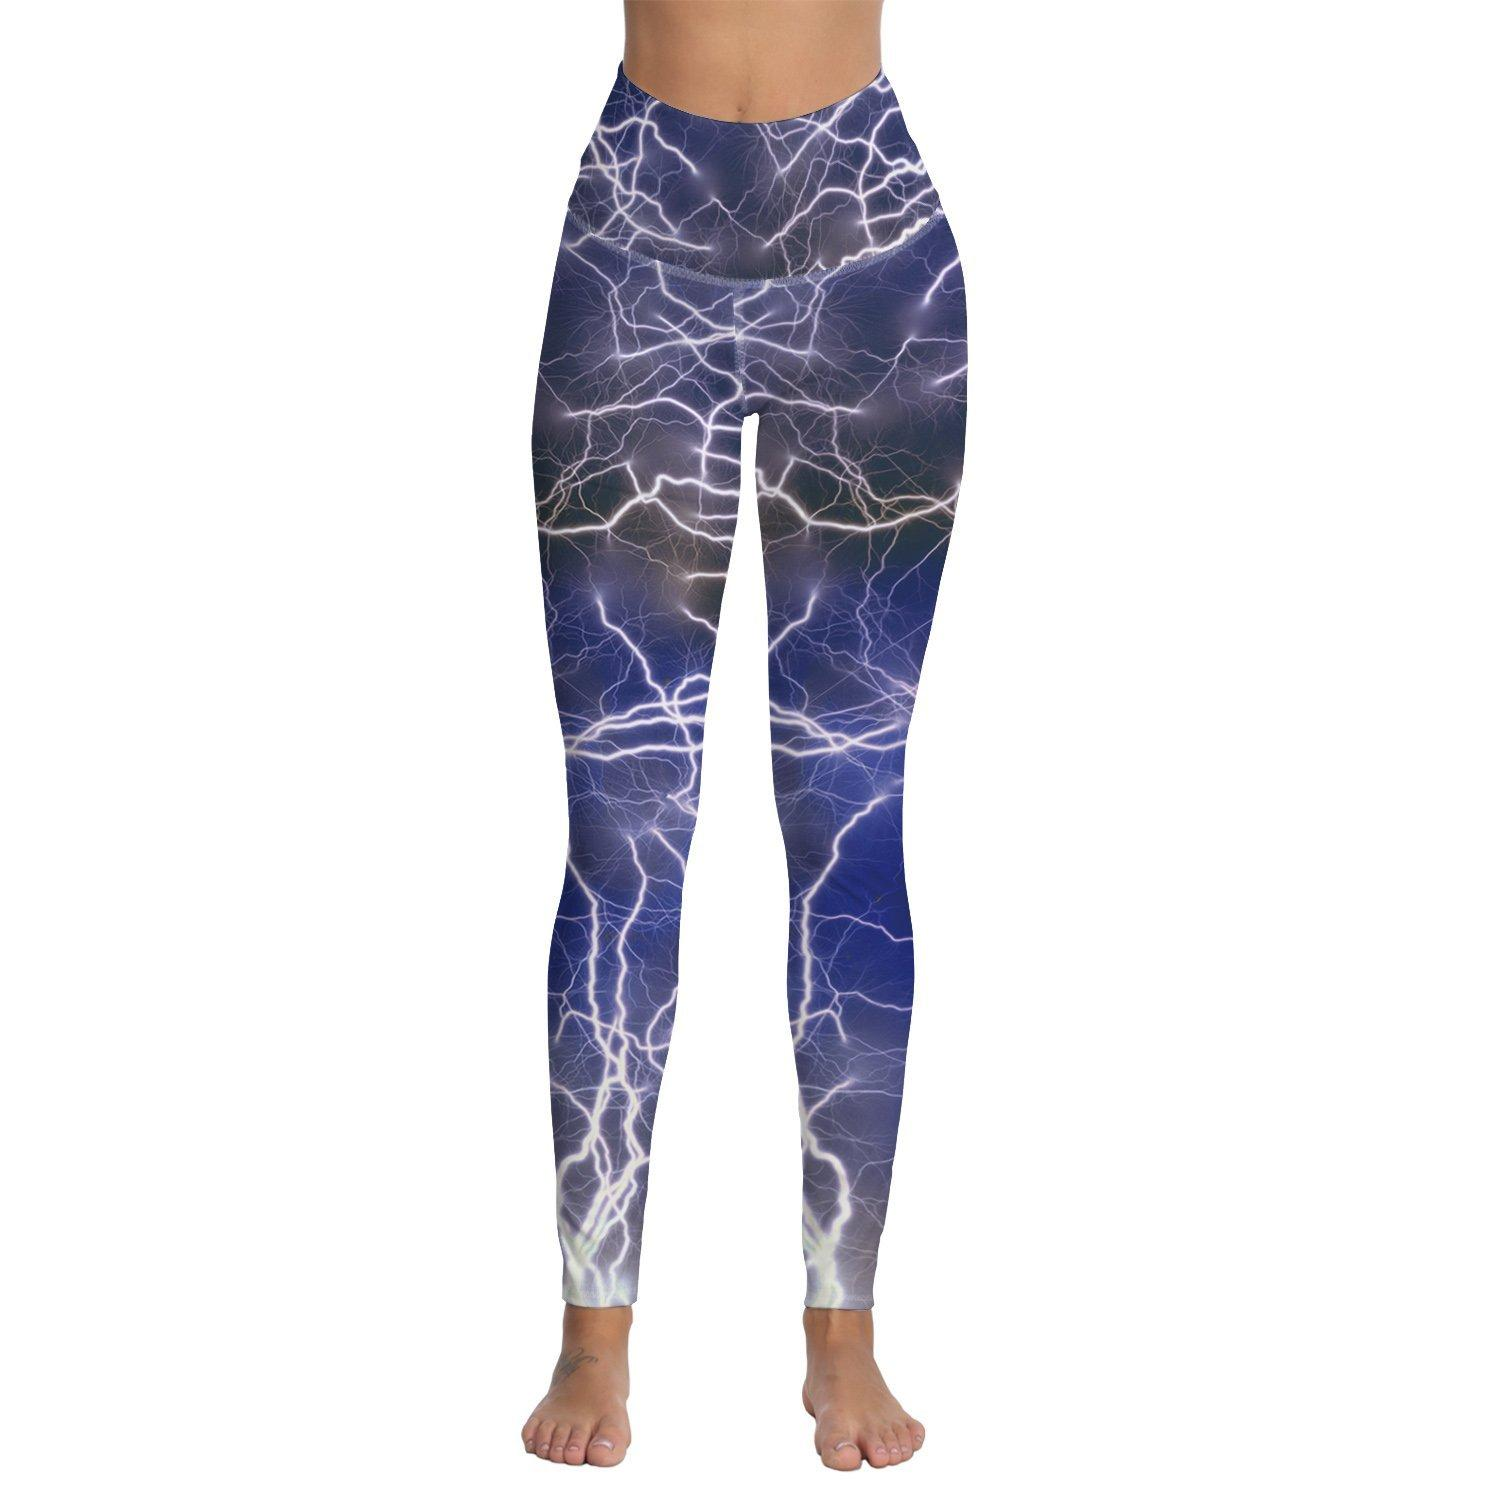 IPOTCH Drop Resistance Compression Shorts Pants for Women Men Butt Hip Protecting for Ski Skateboard Snowboard Learning Practice